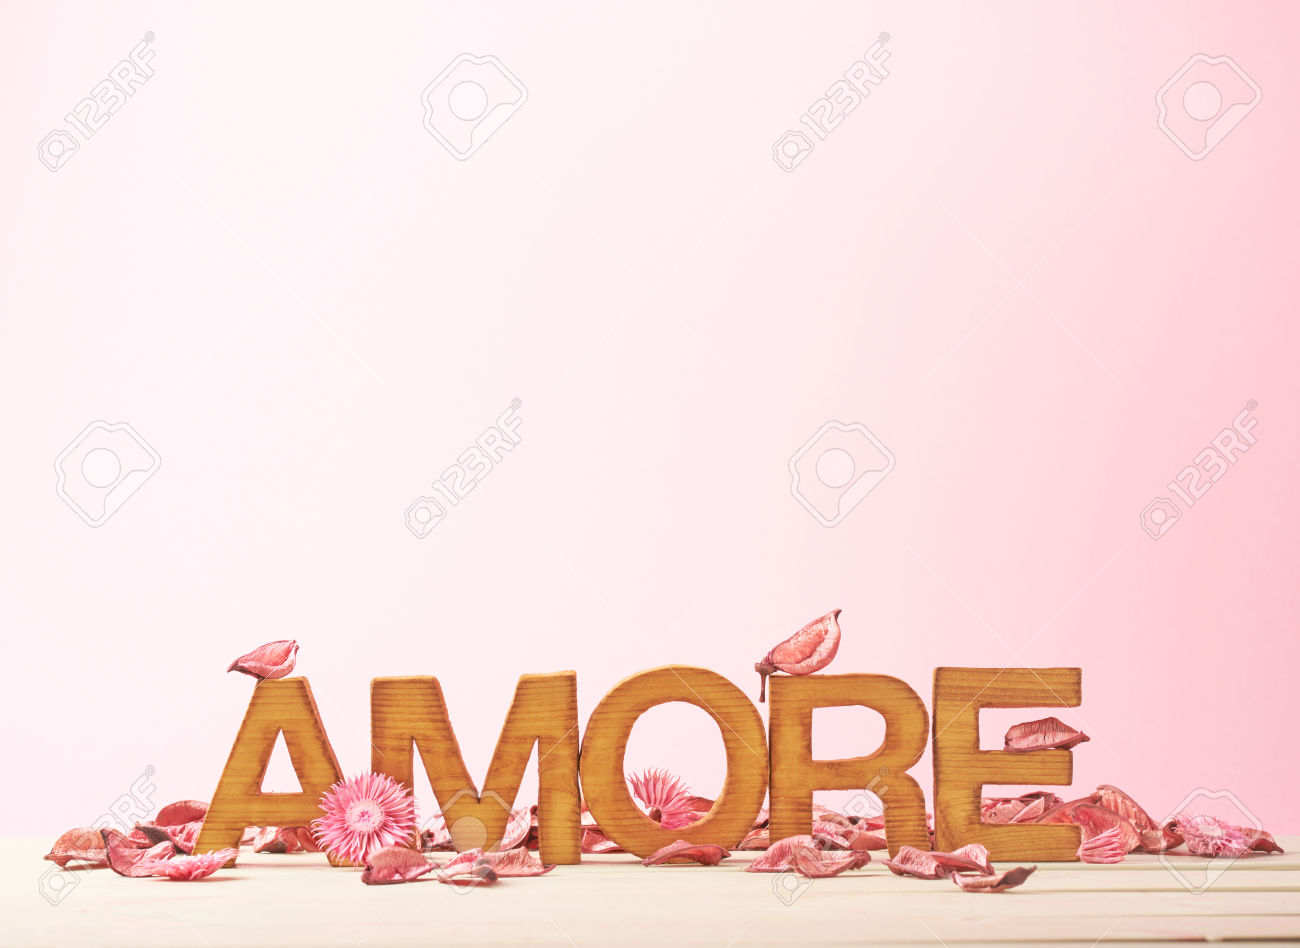 Love block word clipart clipart stock Word Amore Meaning Love In Italian Language As A Composition ... clipart stock